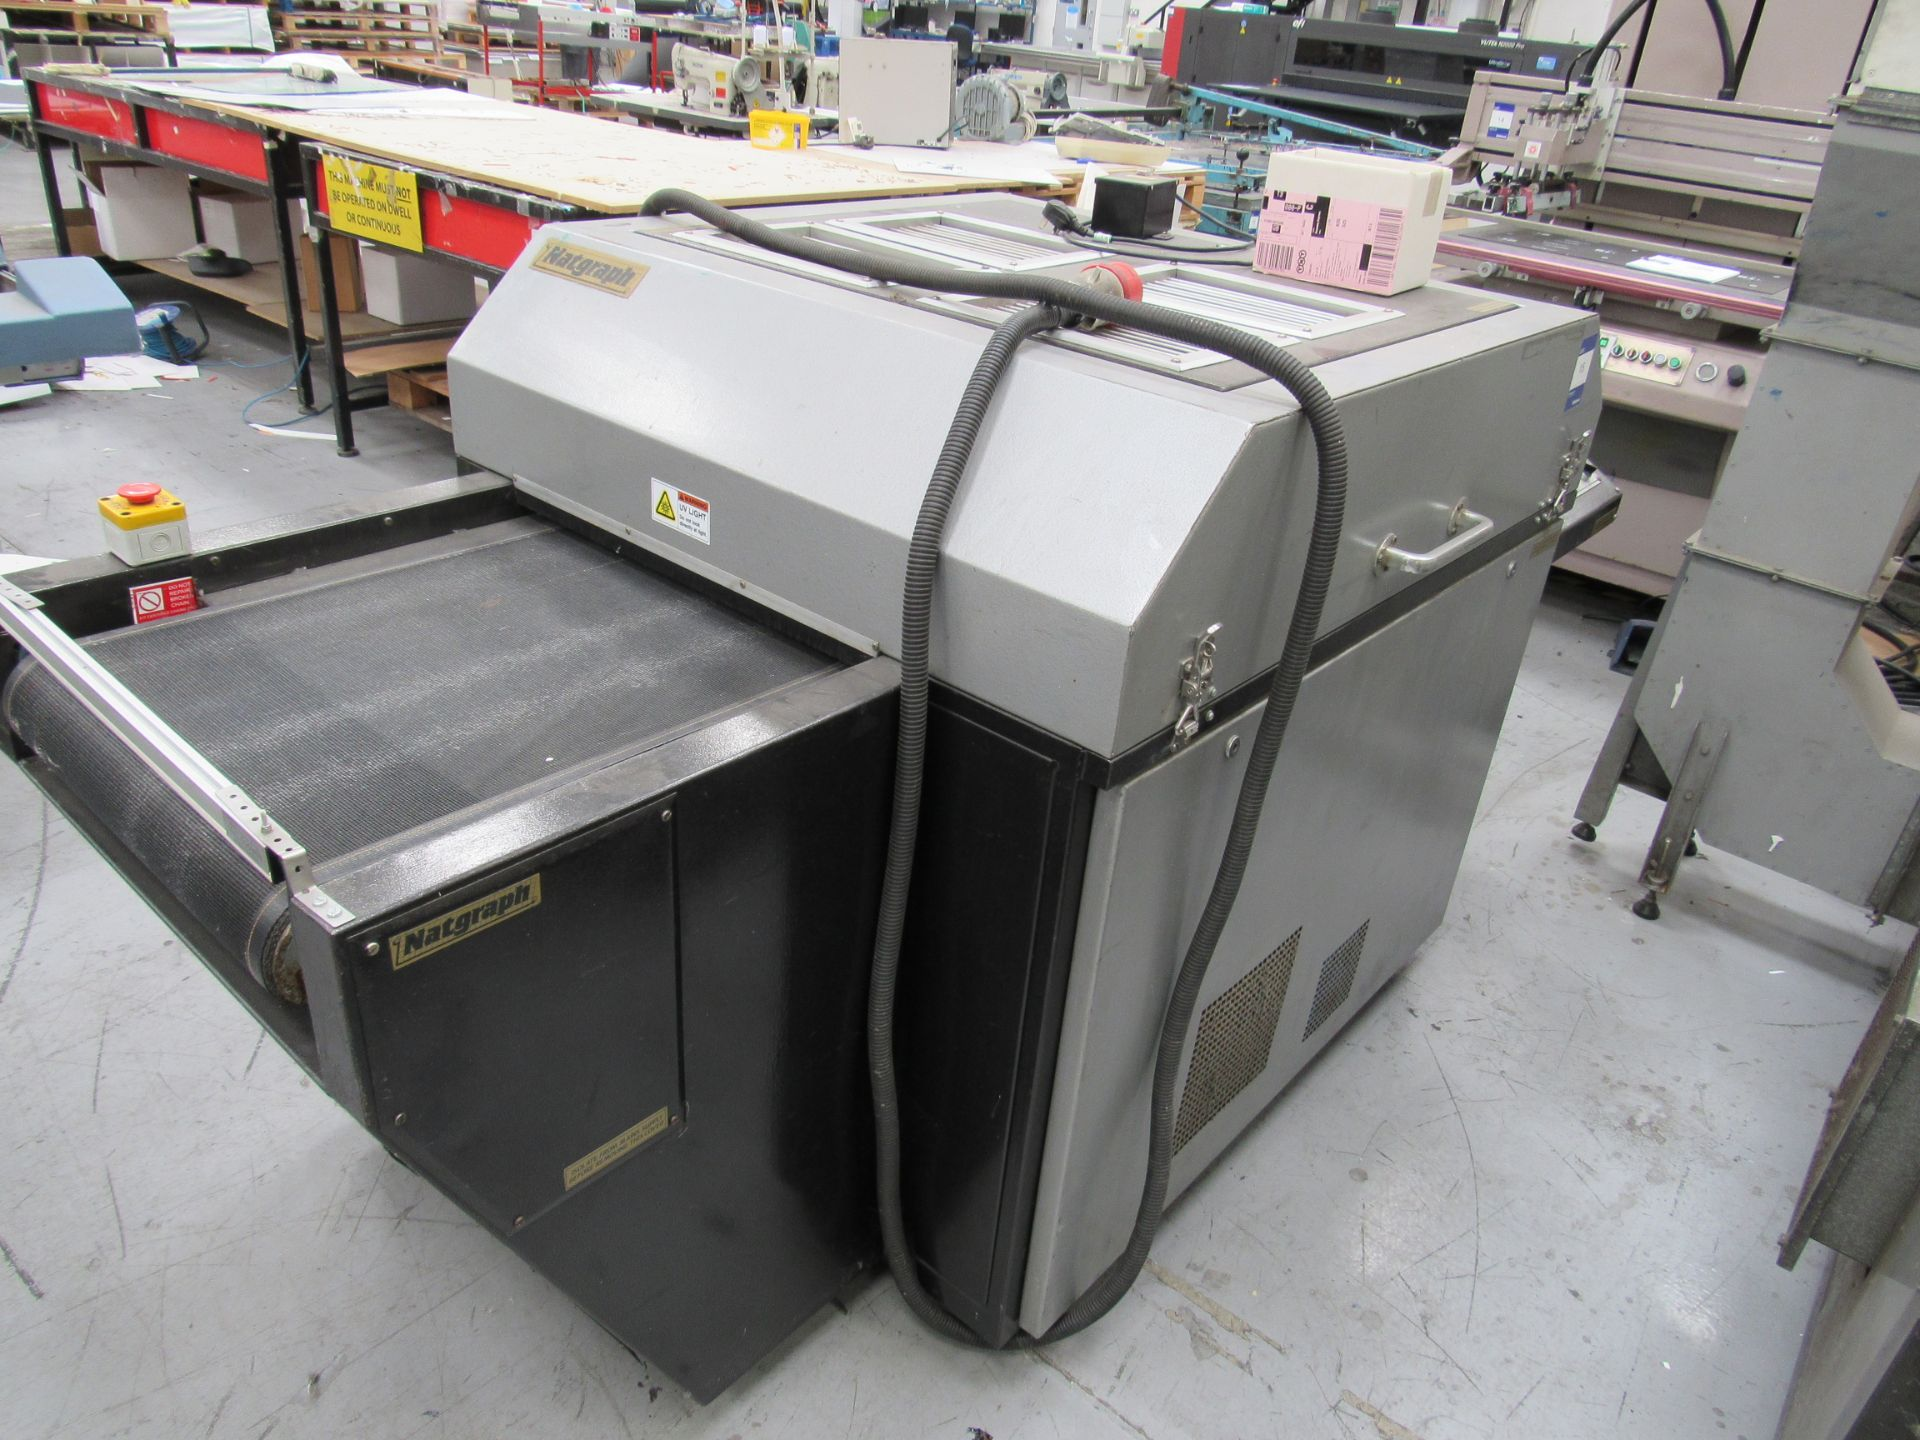 Natgraph UV Drier with Belt, 6985 Hours, Lamp Changed at 6795 Hours - Image 3 of 4